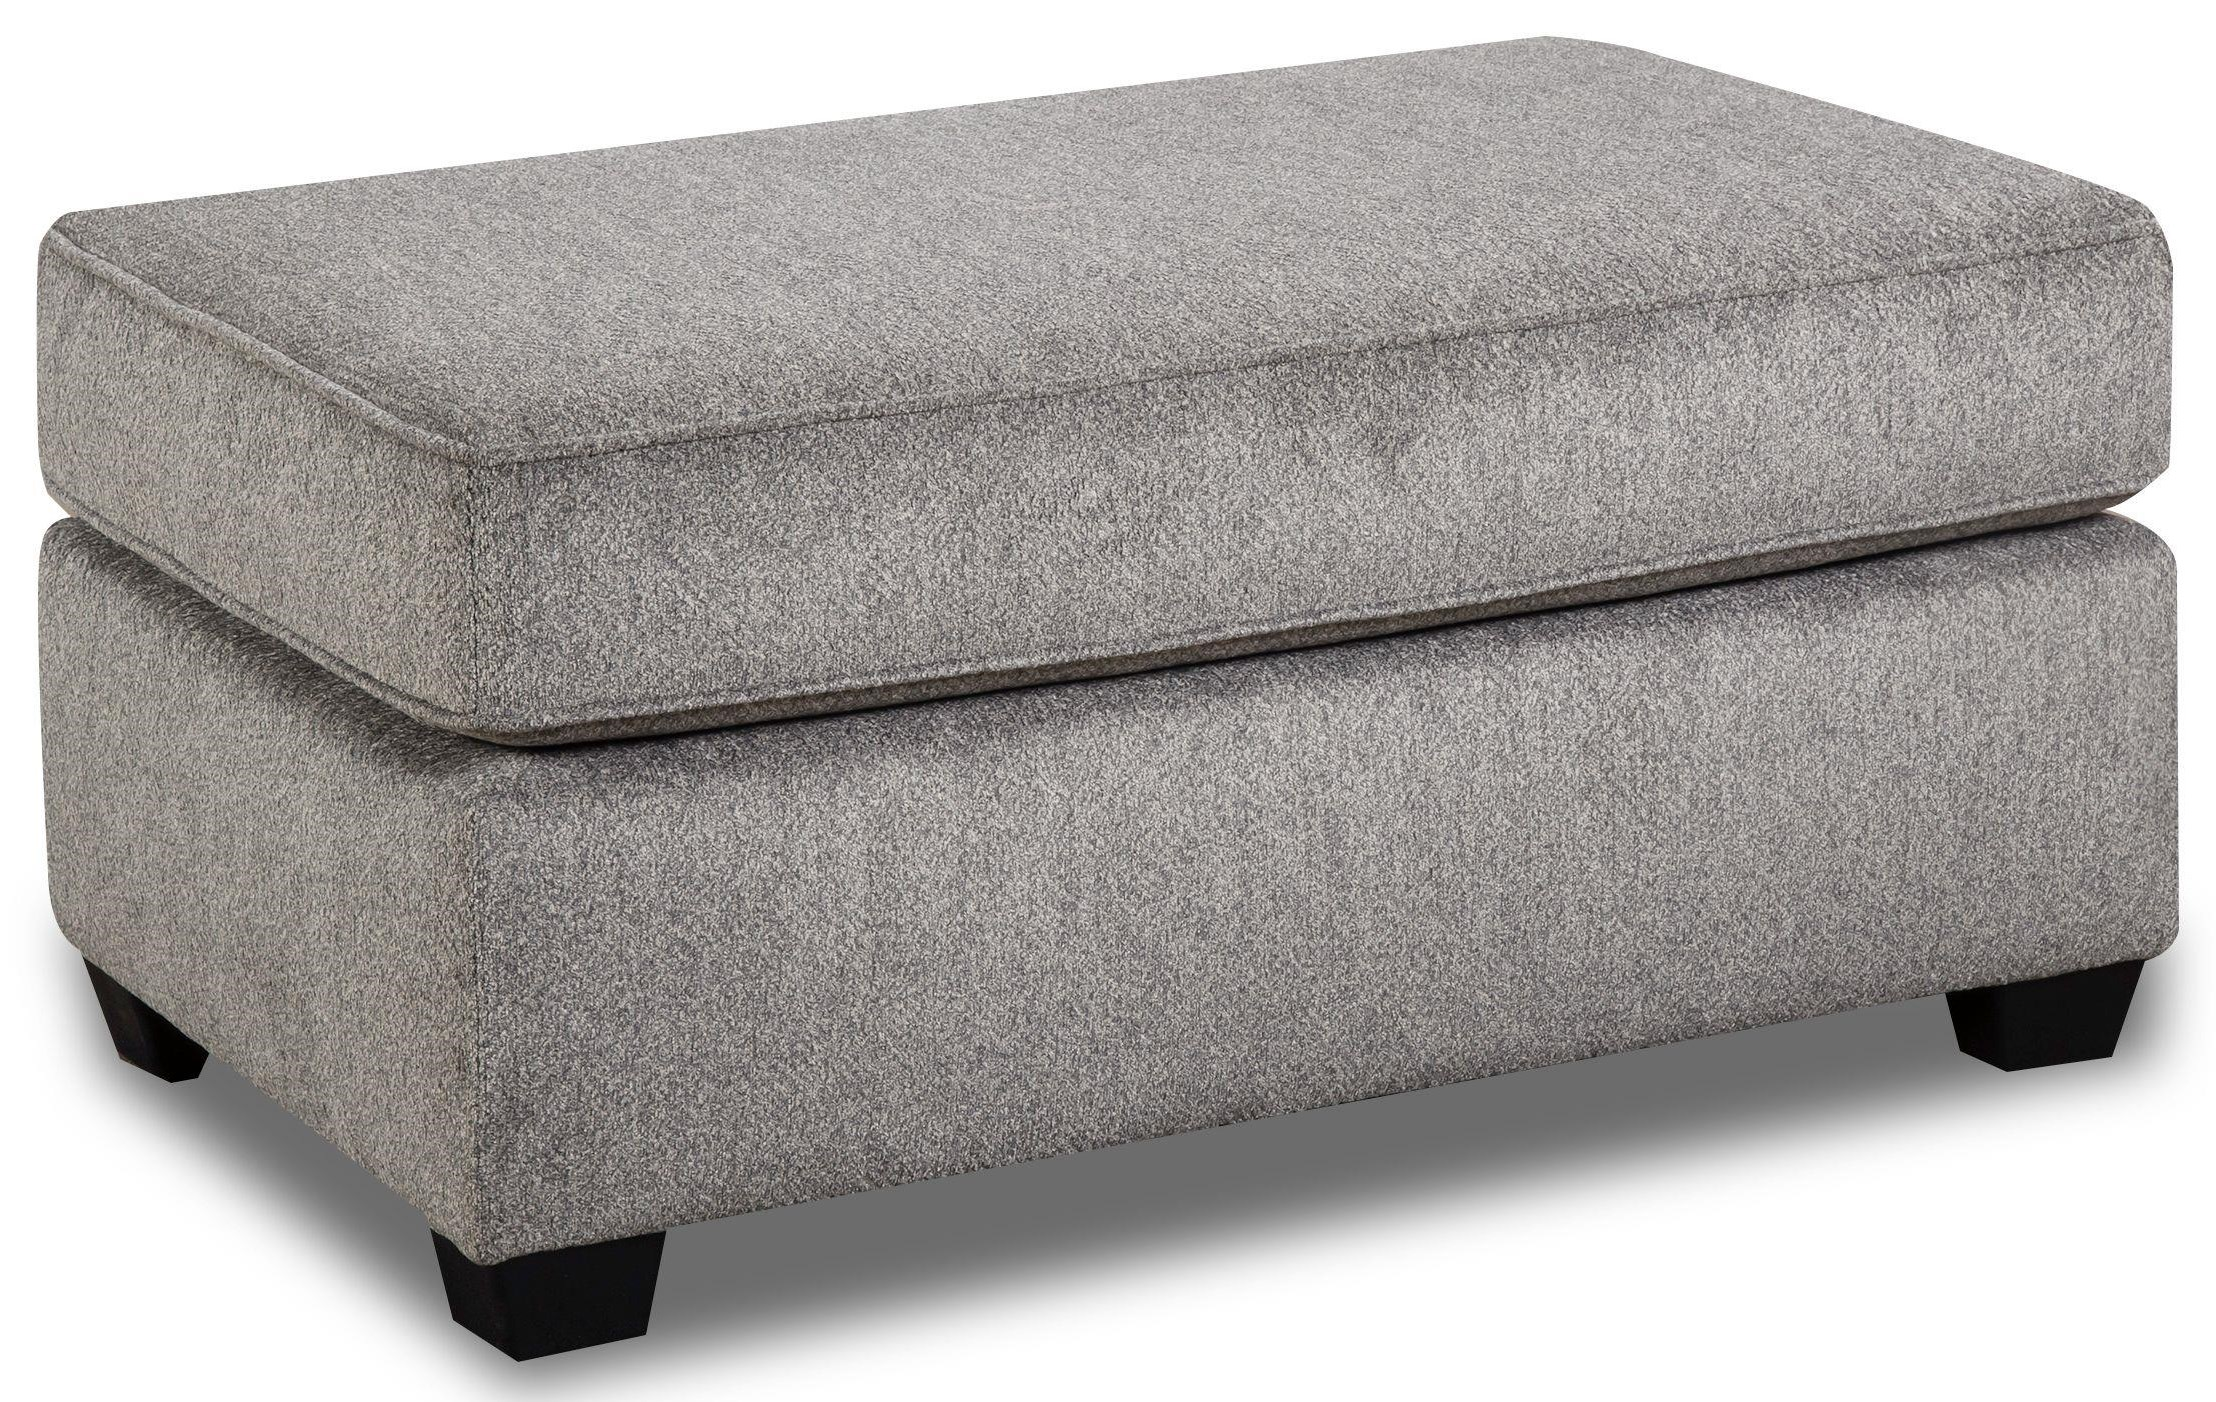 St. Charles Ottoman by Behold Home at Darvin Furniture